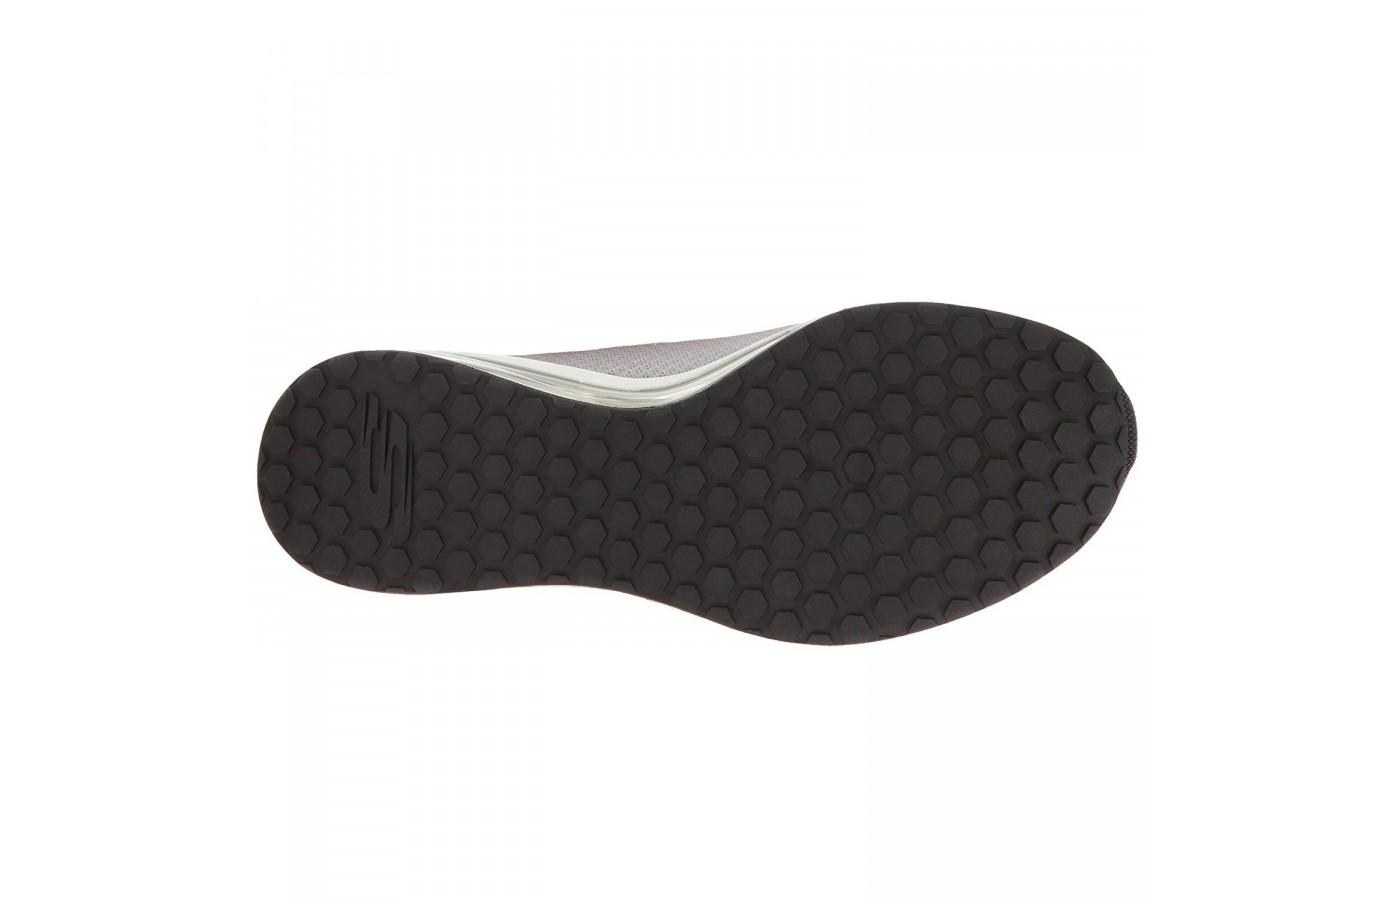 The Skechers Skech Air offers flexible traction throughout the outsole for better control when in motion.